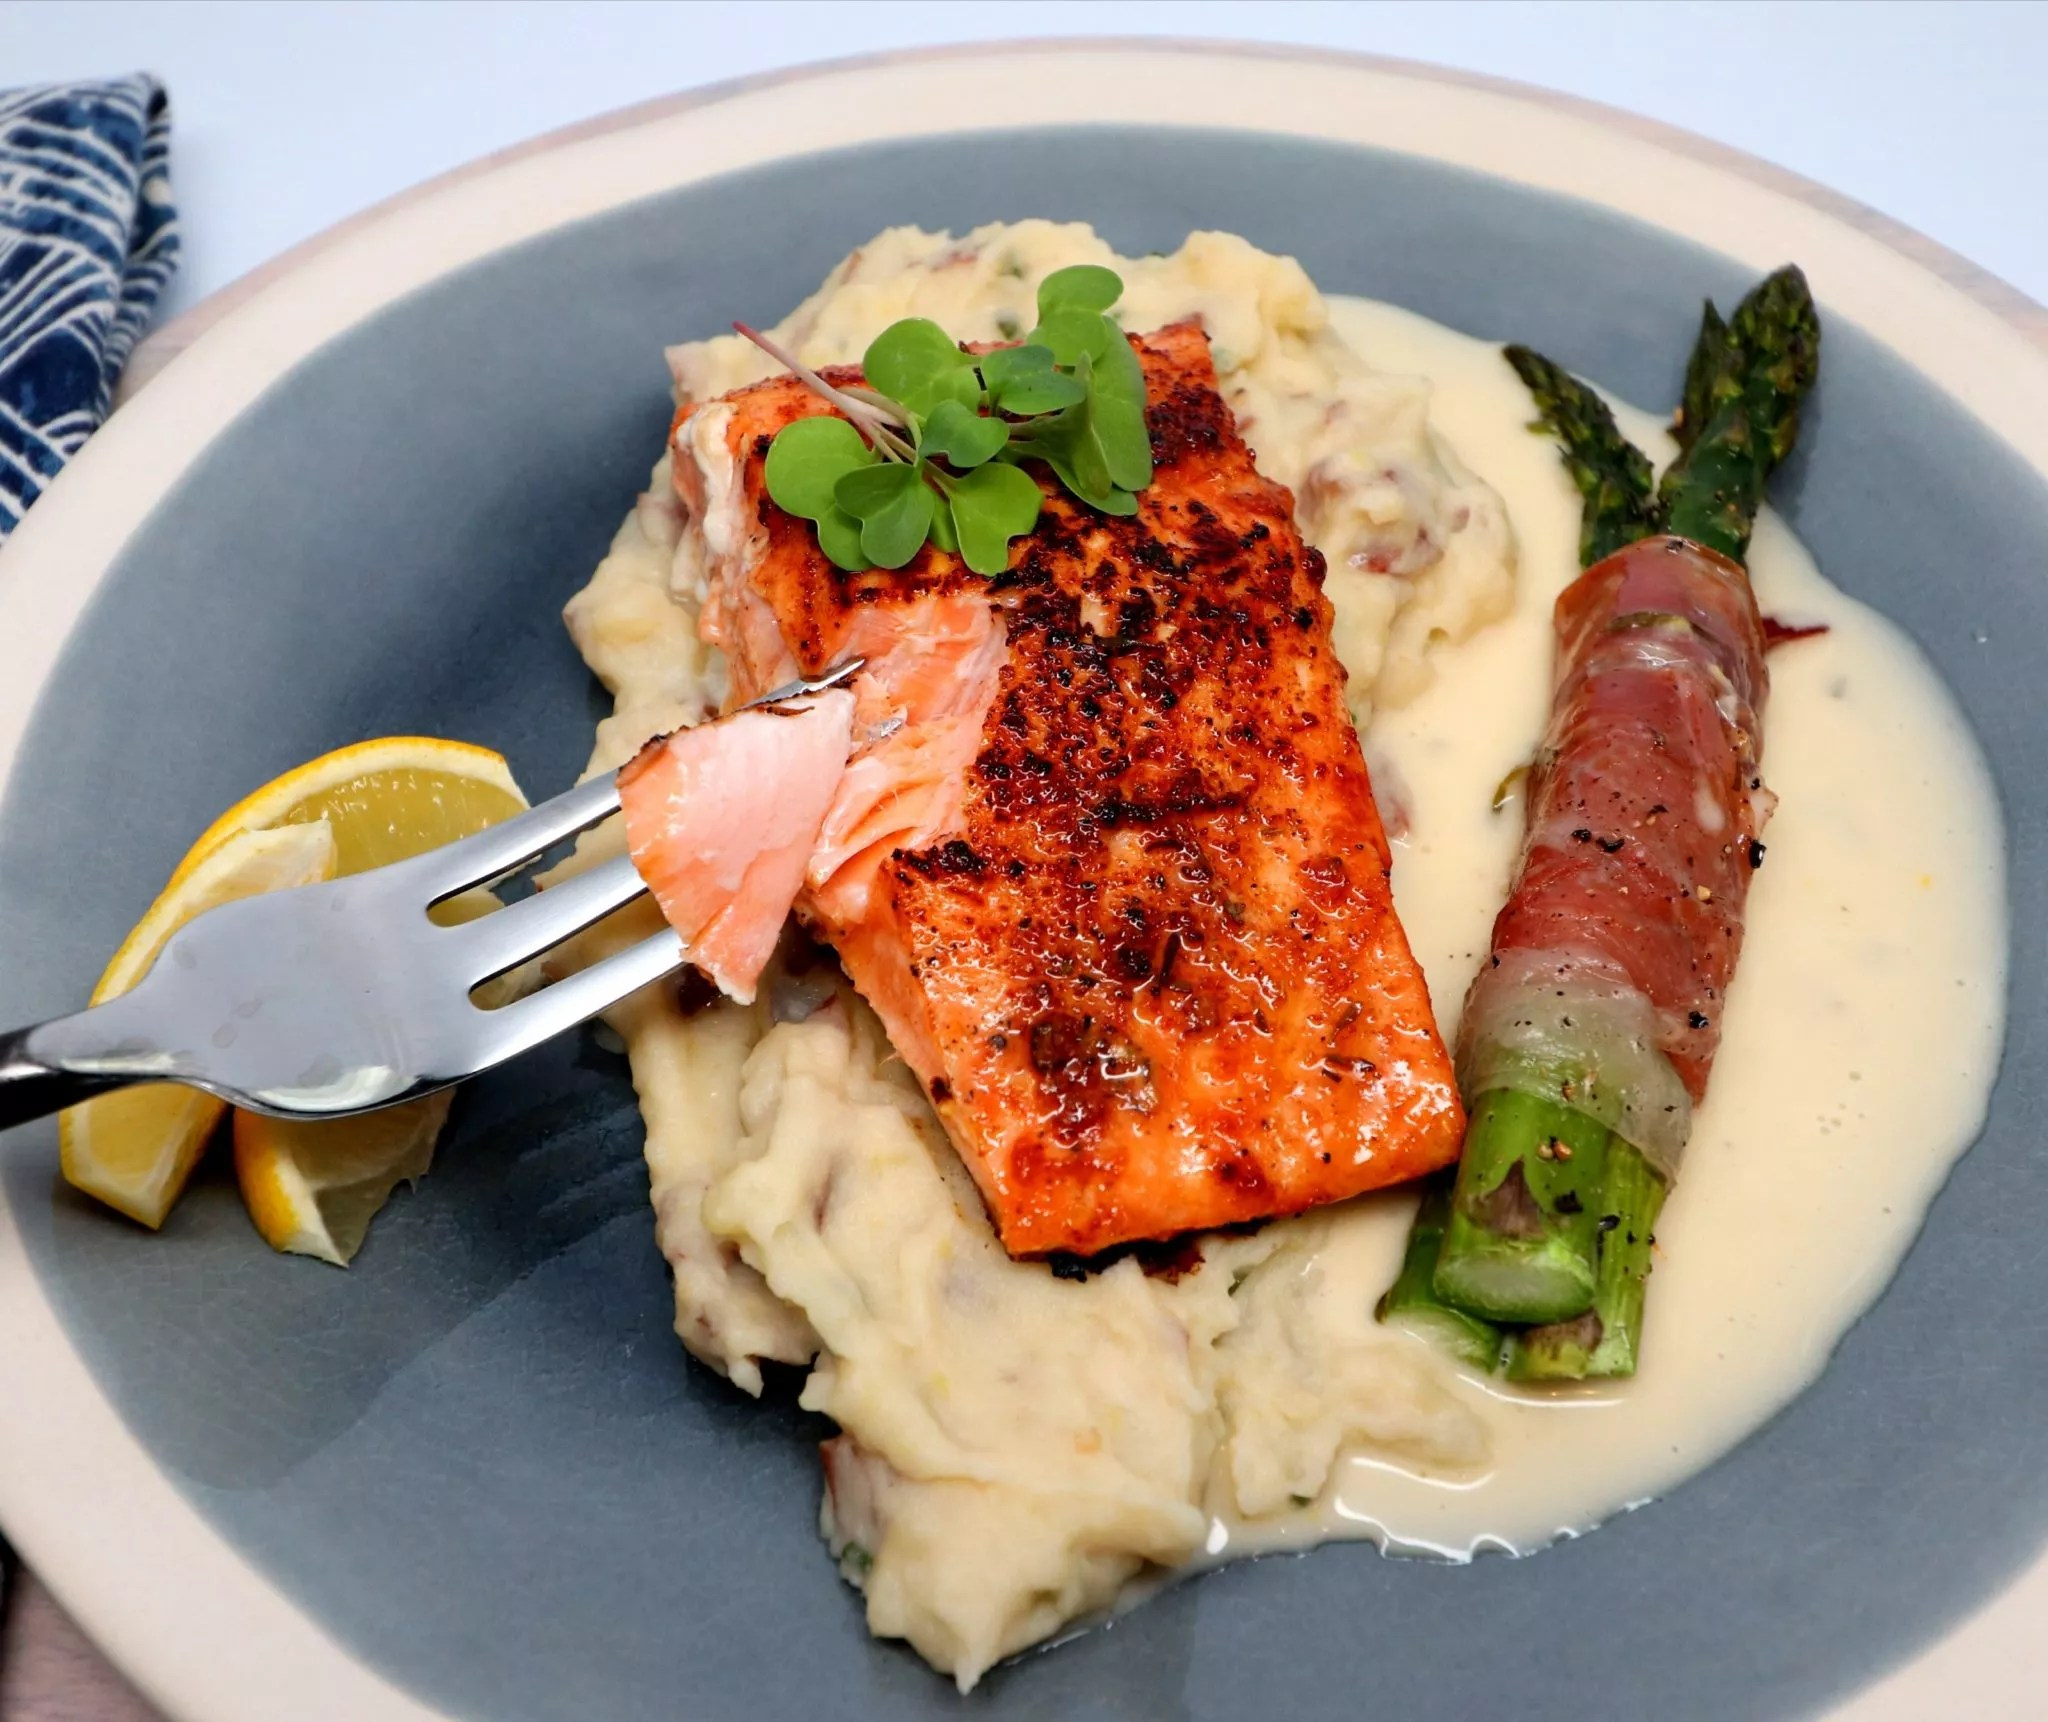 Corner Sous Vide Salmon Harvey Persson What To Serve Salmon Steaks Salmon On Grill What To Serve Serve Salmon Your Sides nice food What To Serve With Salmon